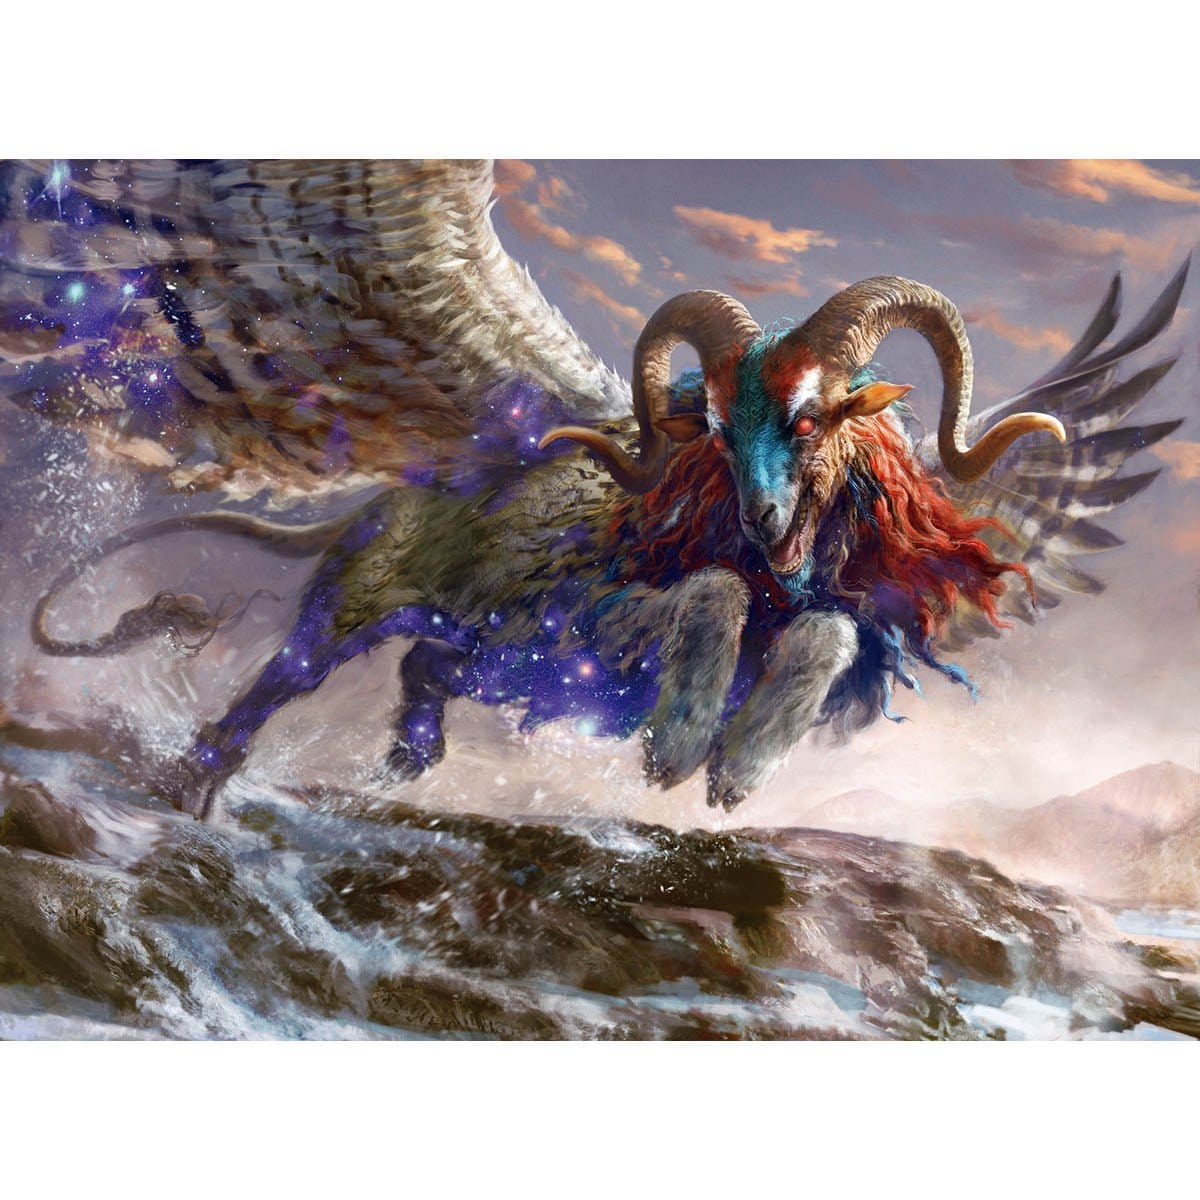 Mischievous Chimera Print - Print - Original Magic Art - Accessories for Magic the Gathering and other card games